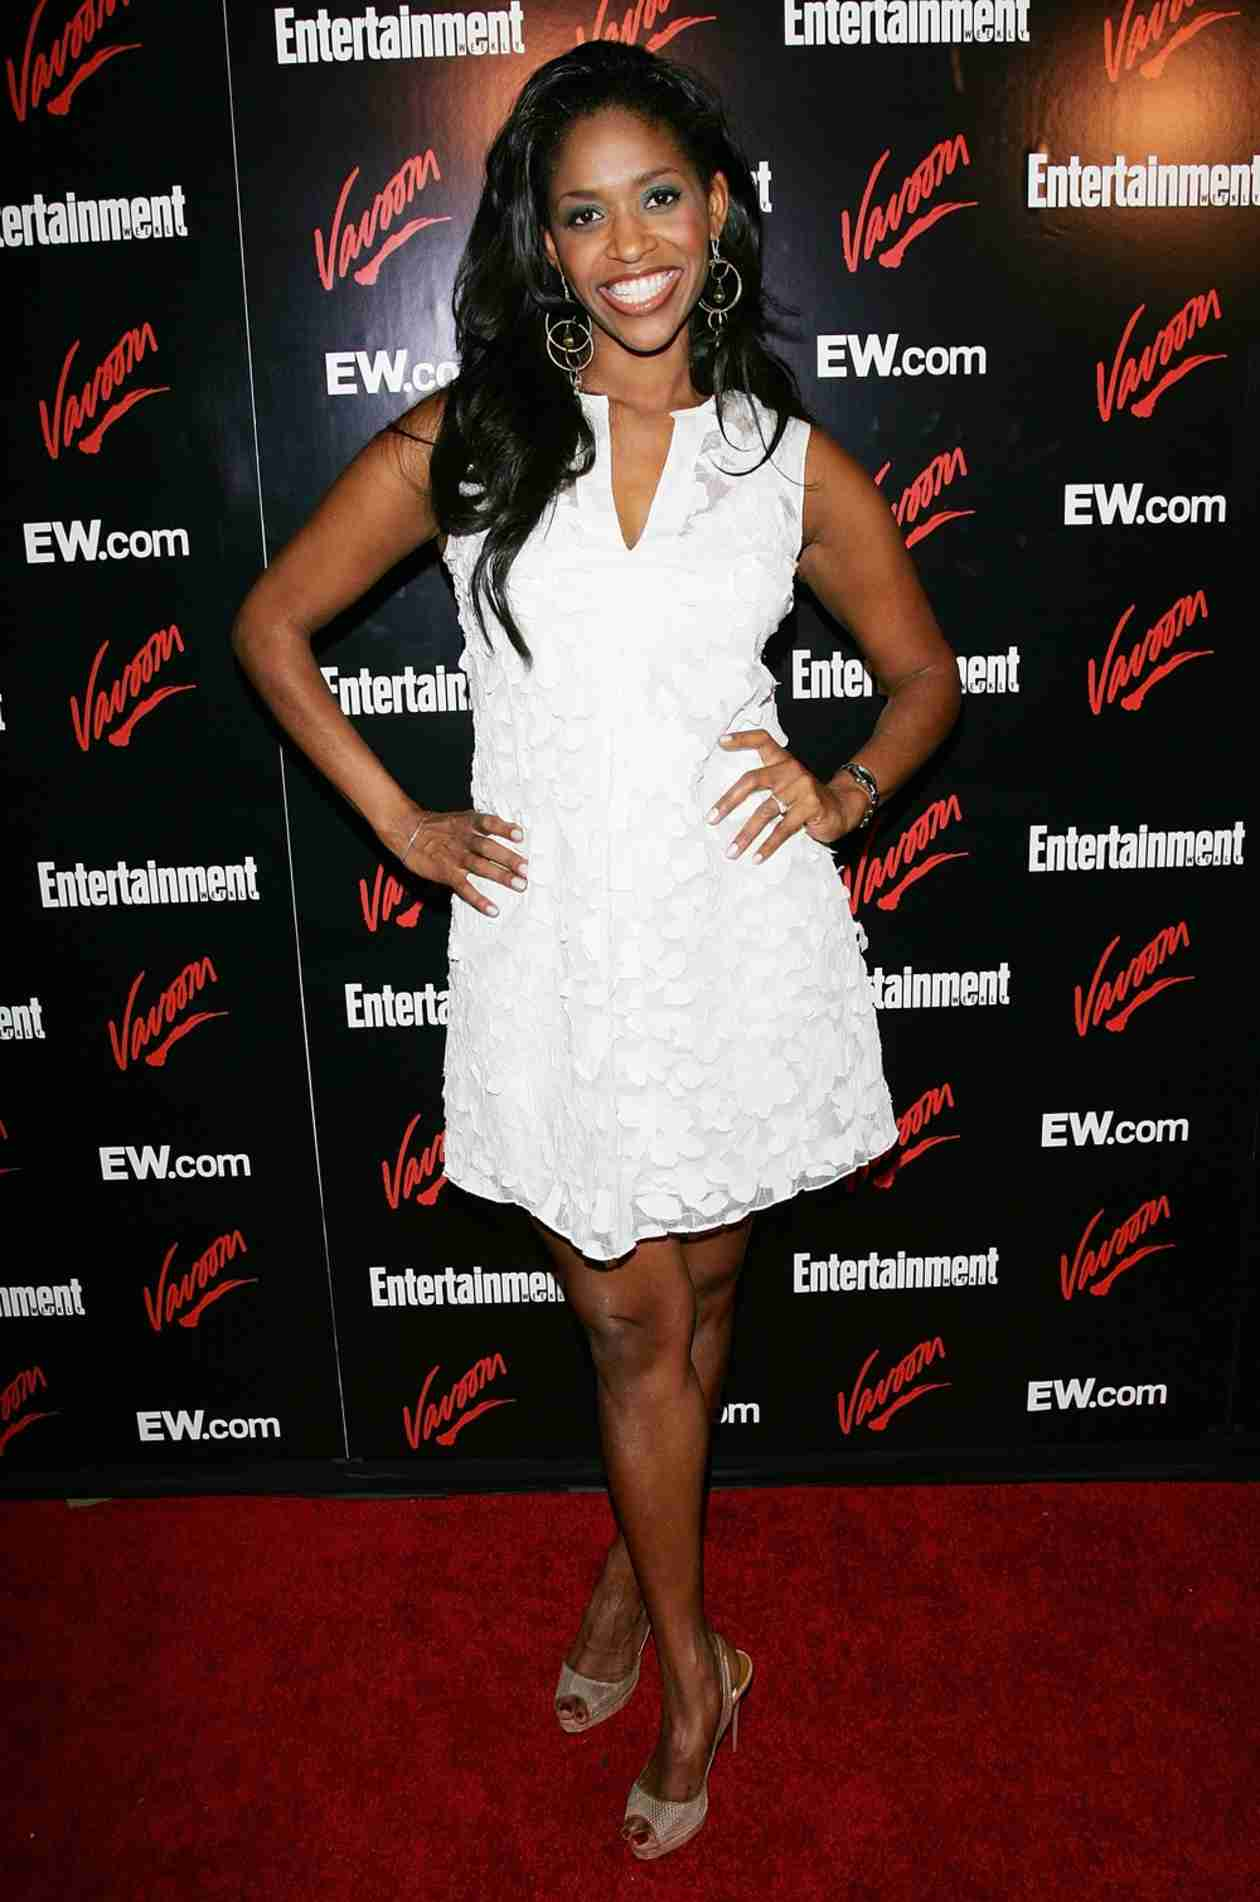 Once Upon A Time Spoiler Merrin Dungey Cast As Ursula